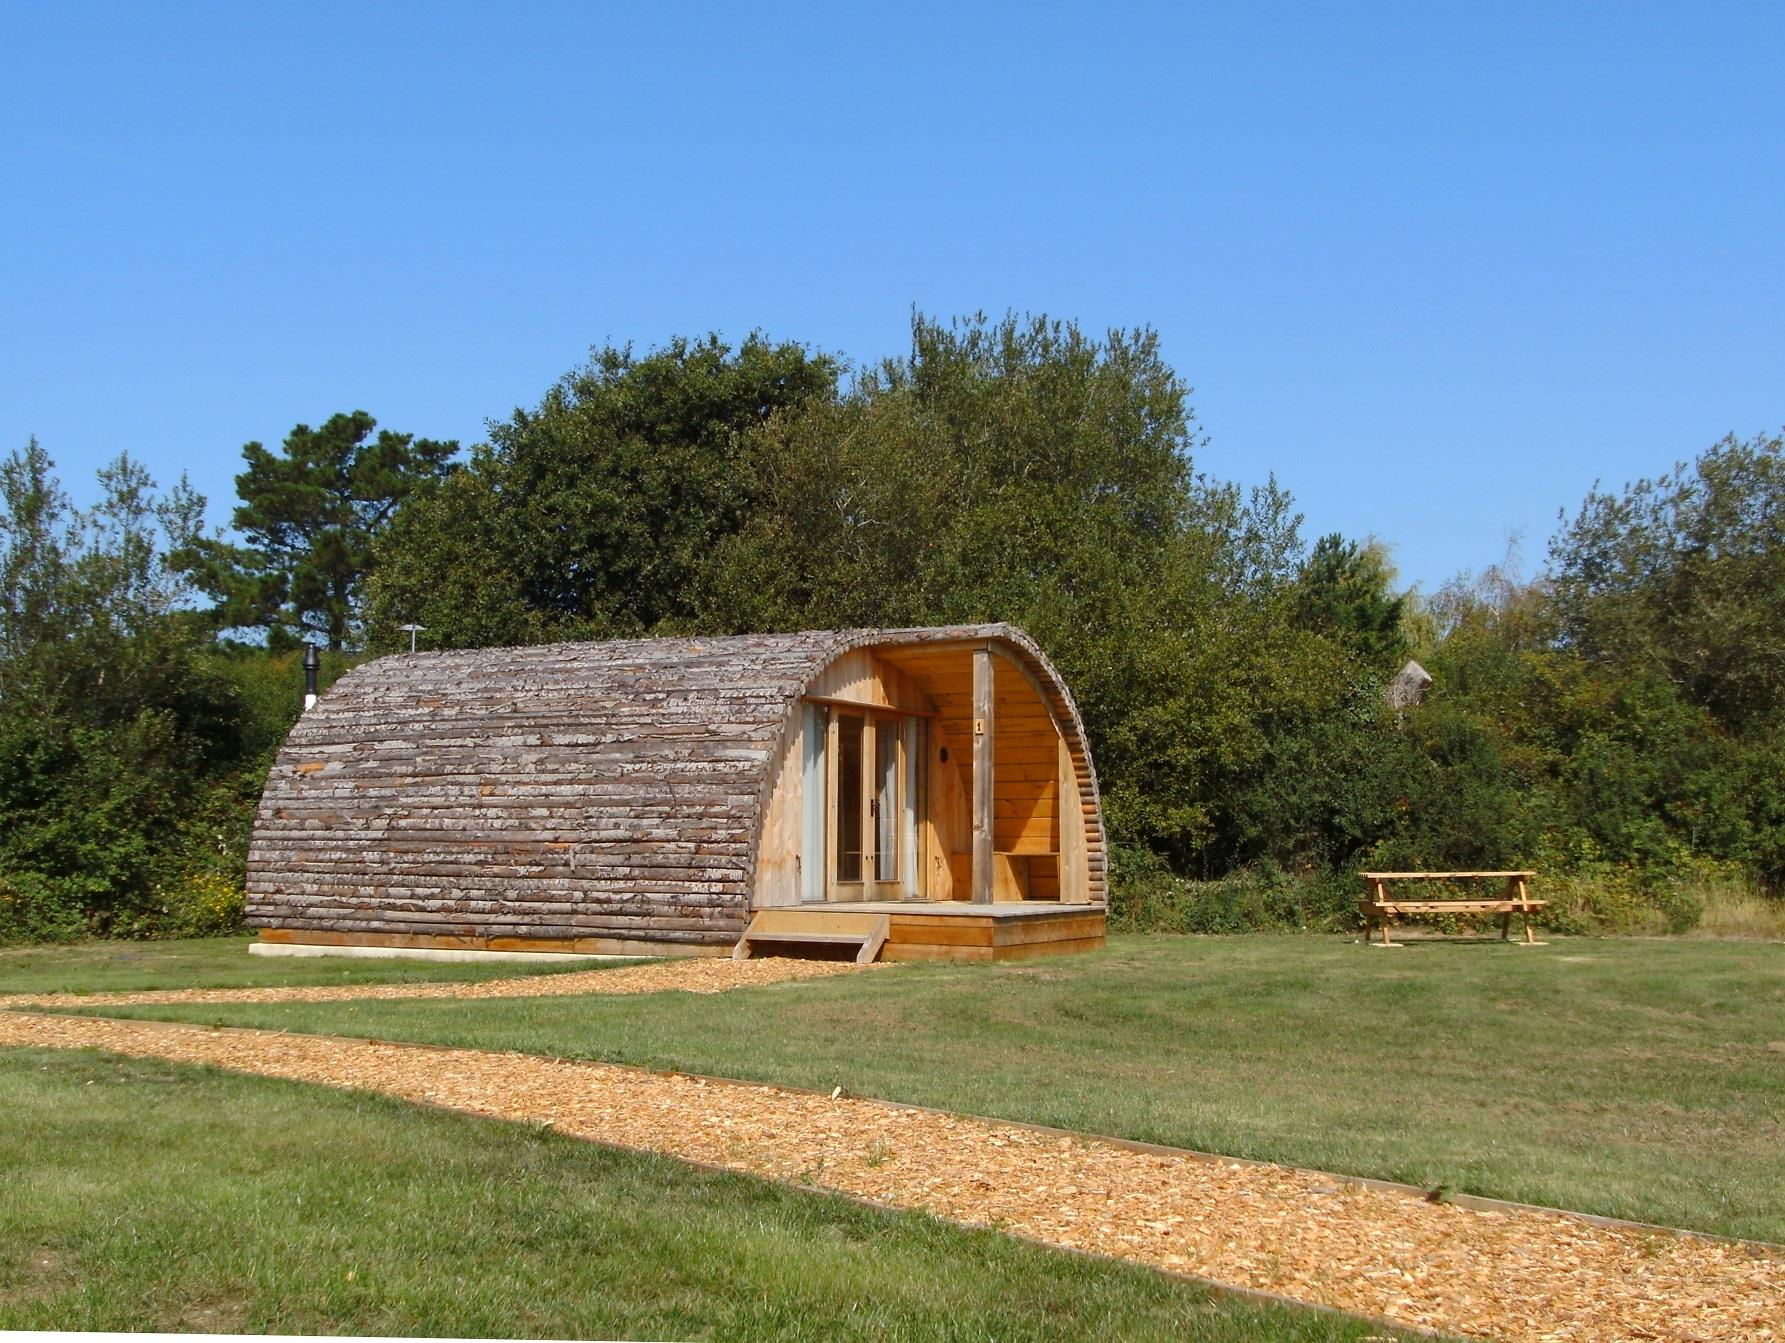 Glamping cabins on the Isle of Wight